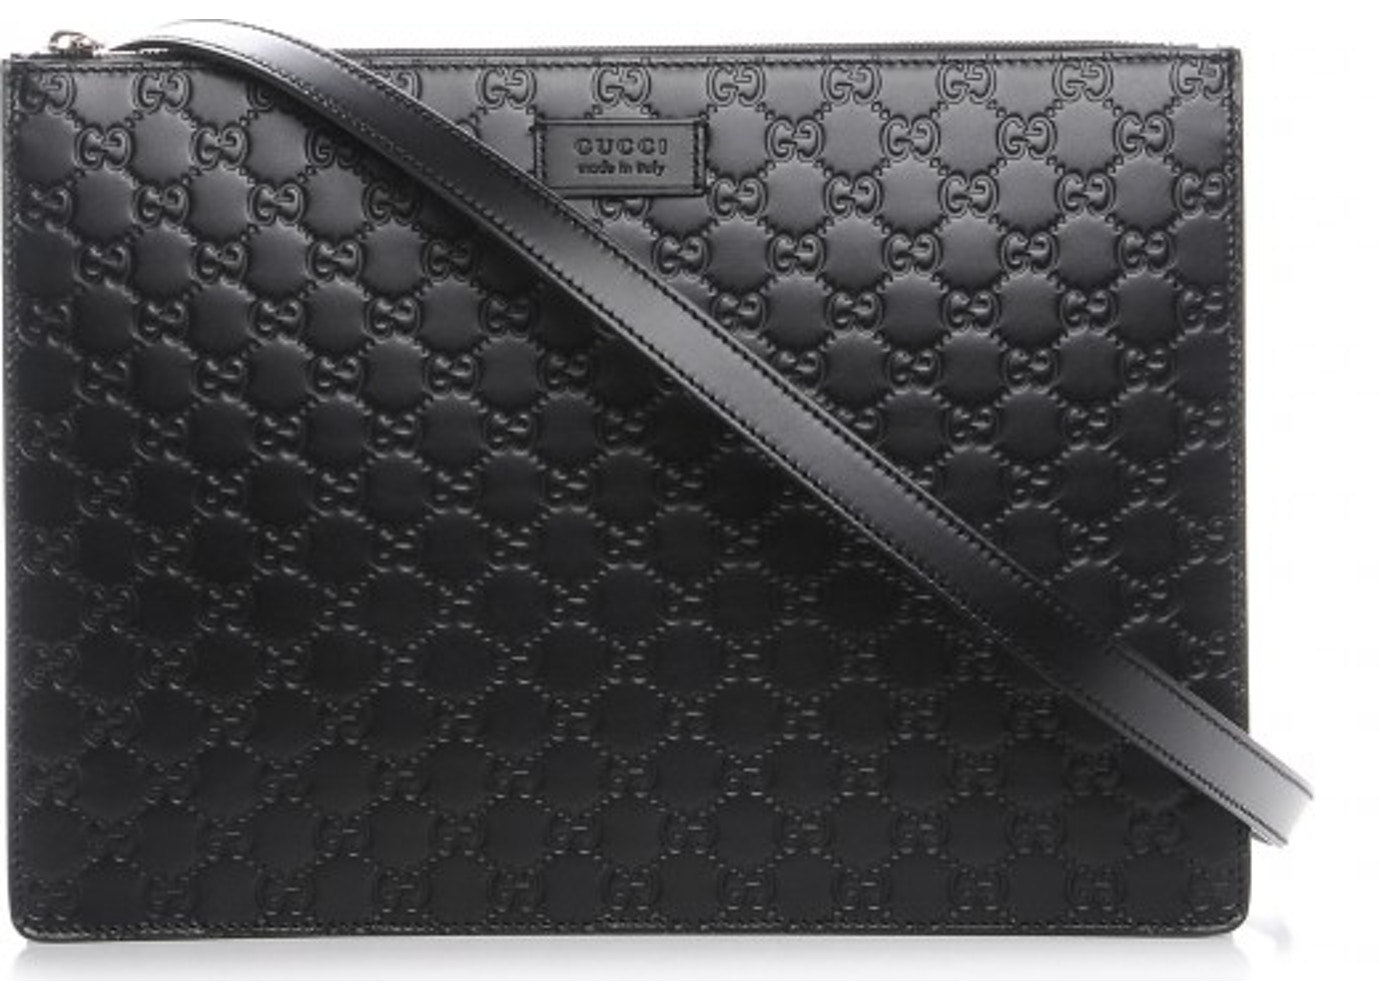 b6e937334 Gucci Signature Messenger Bag Monogram Guccissima Black. Monogram Guccissima  Black